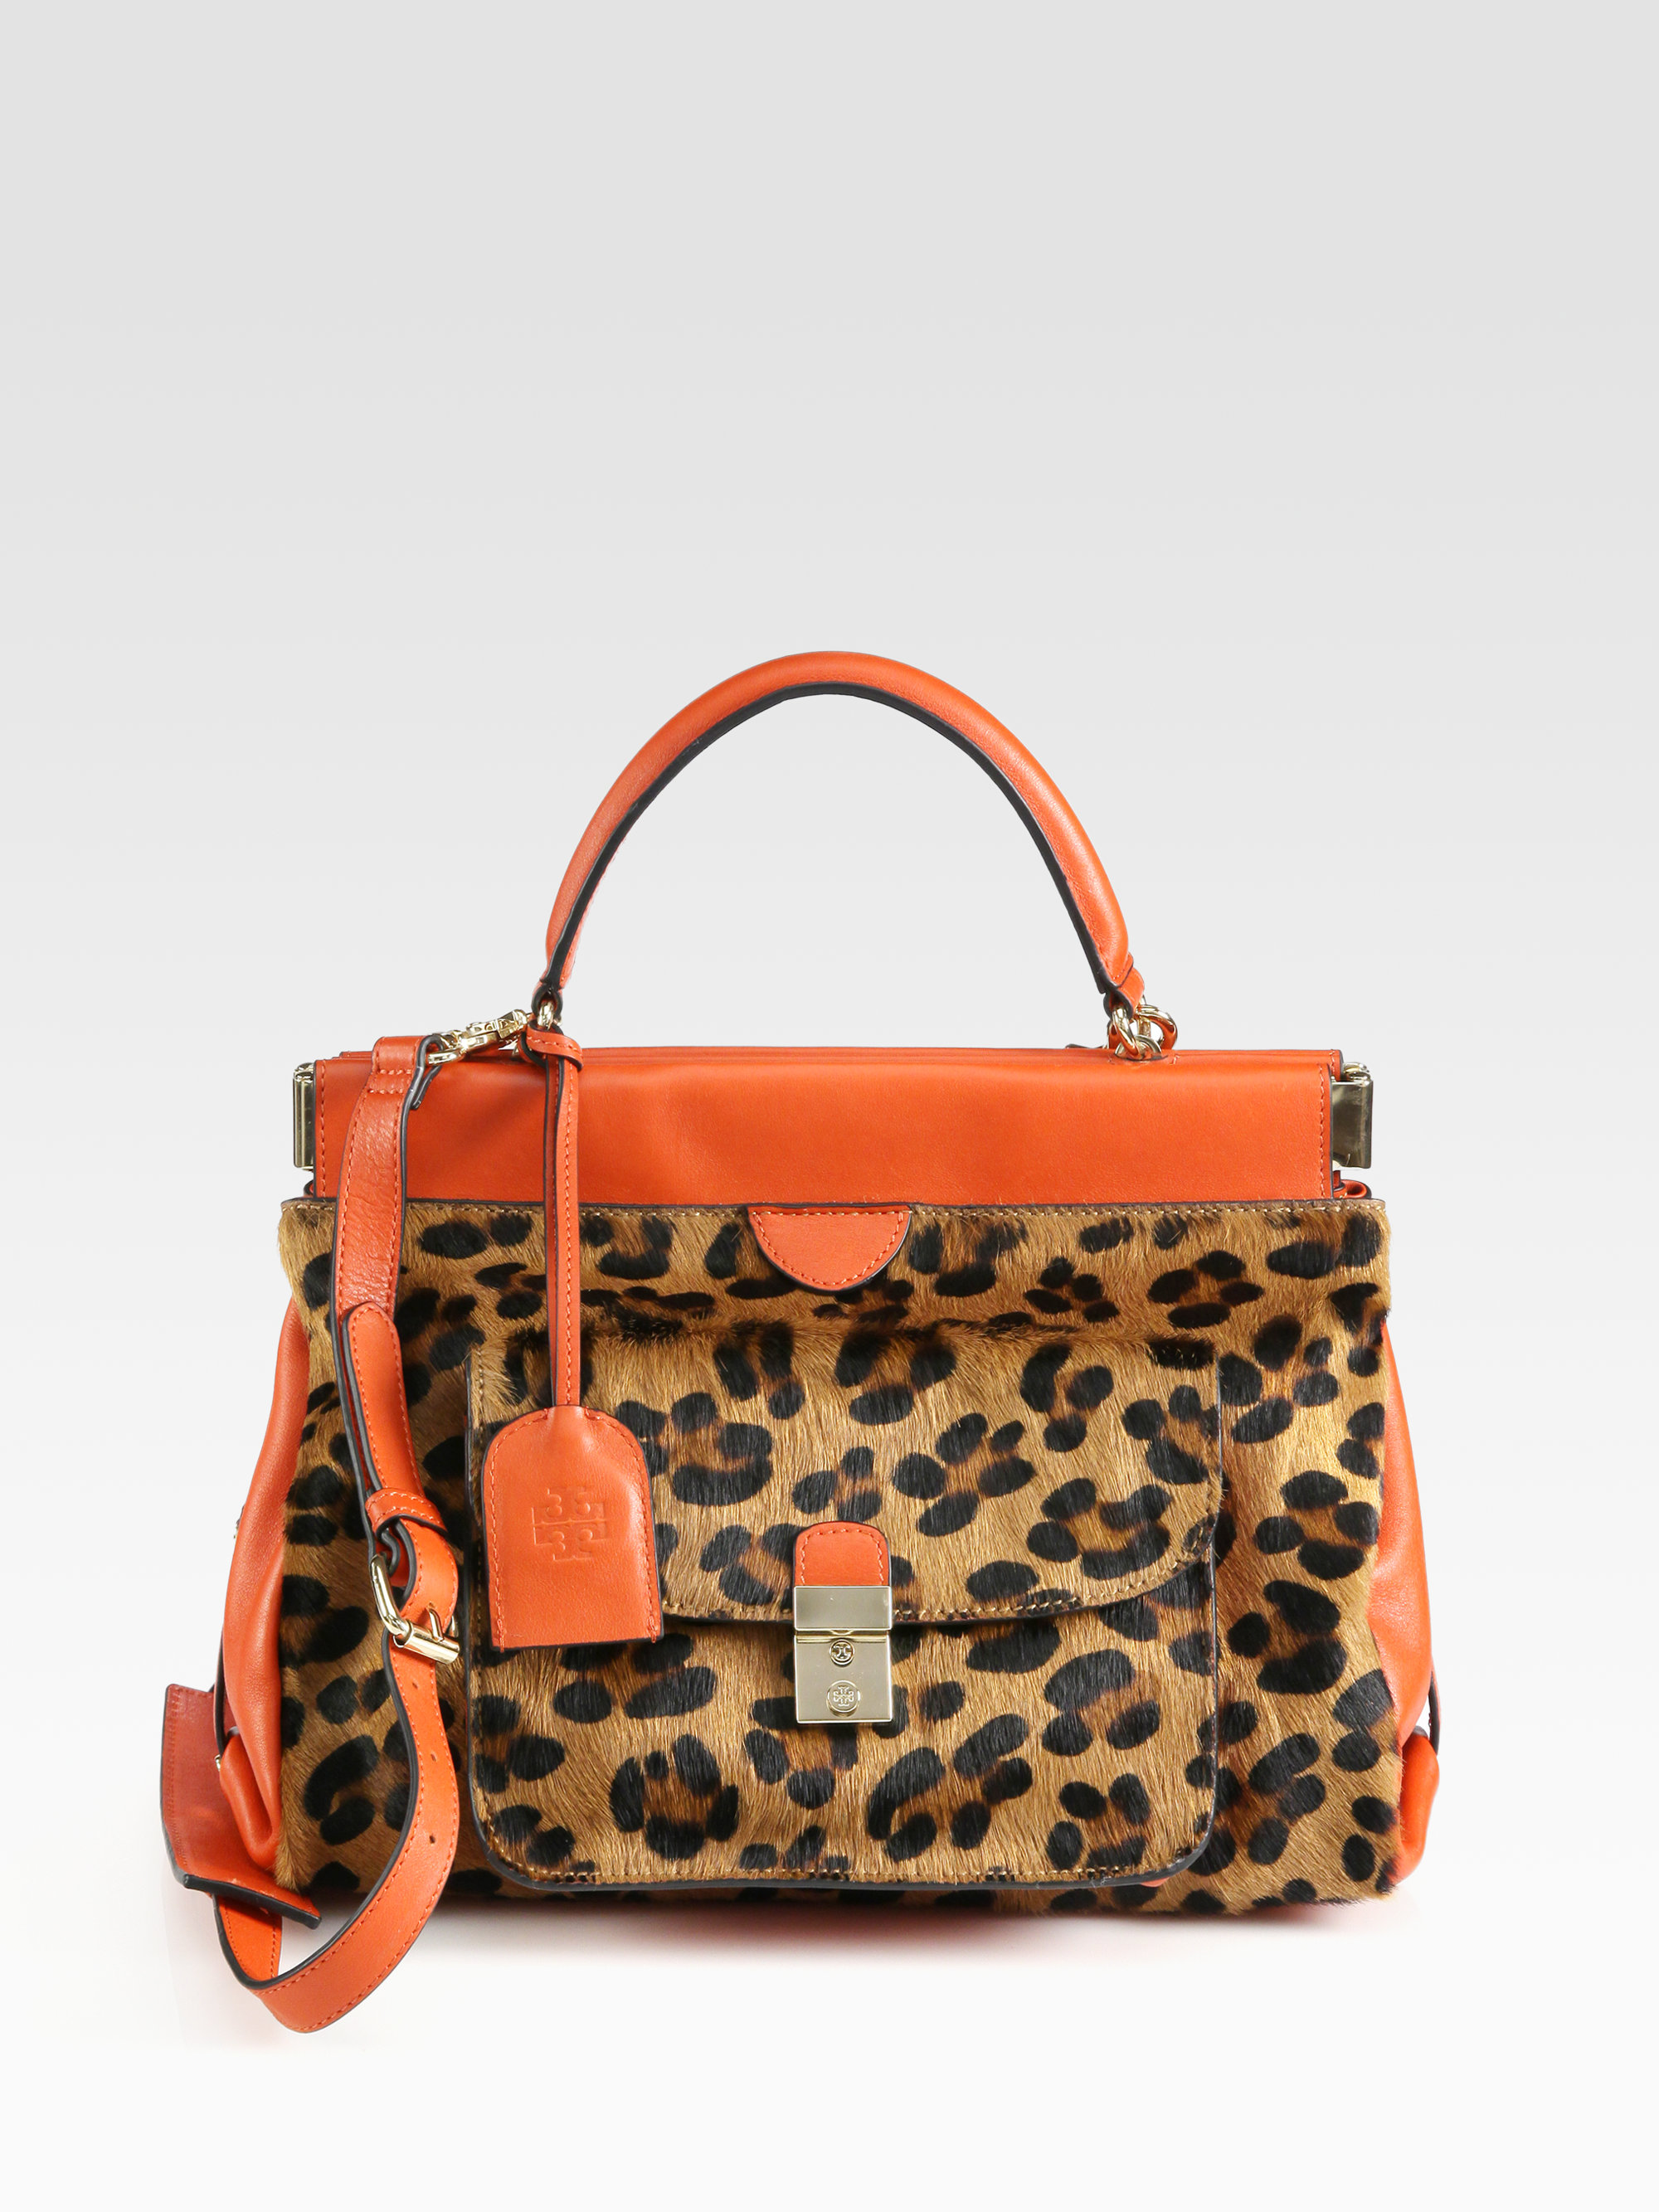 164ac786edfe Lyst - Tory Burch Priscilla Small Calf Hair Leather Satchel in Orange